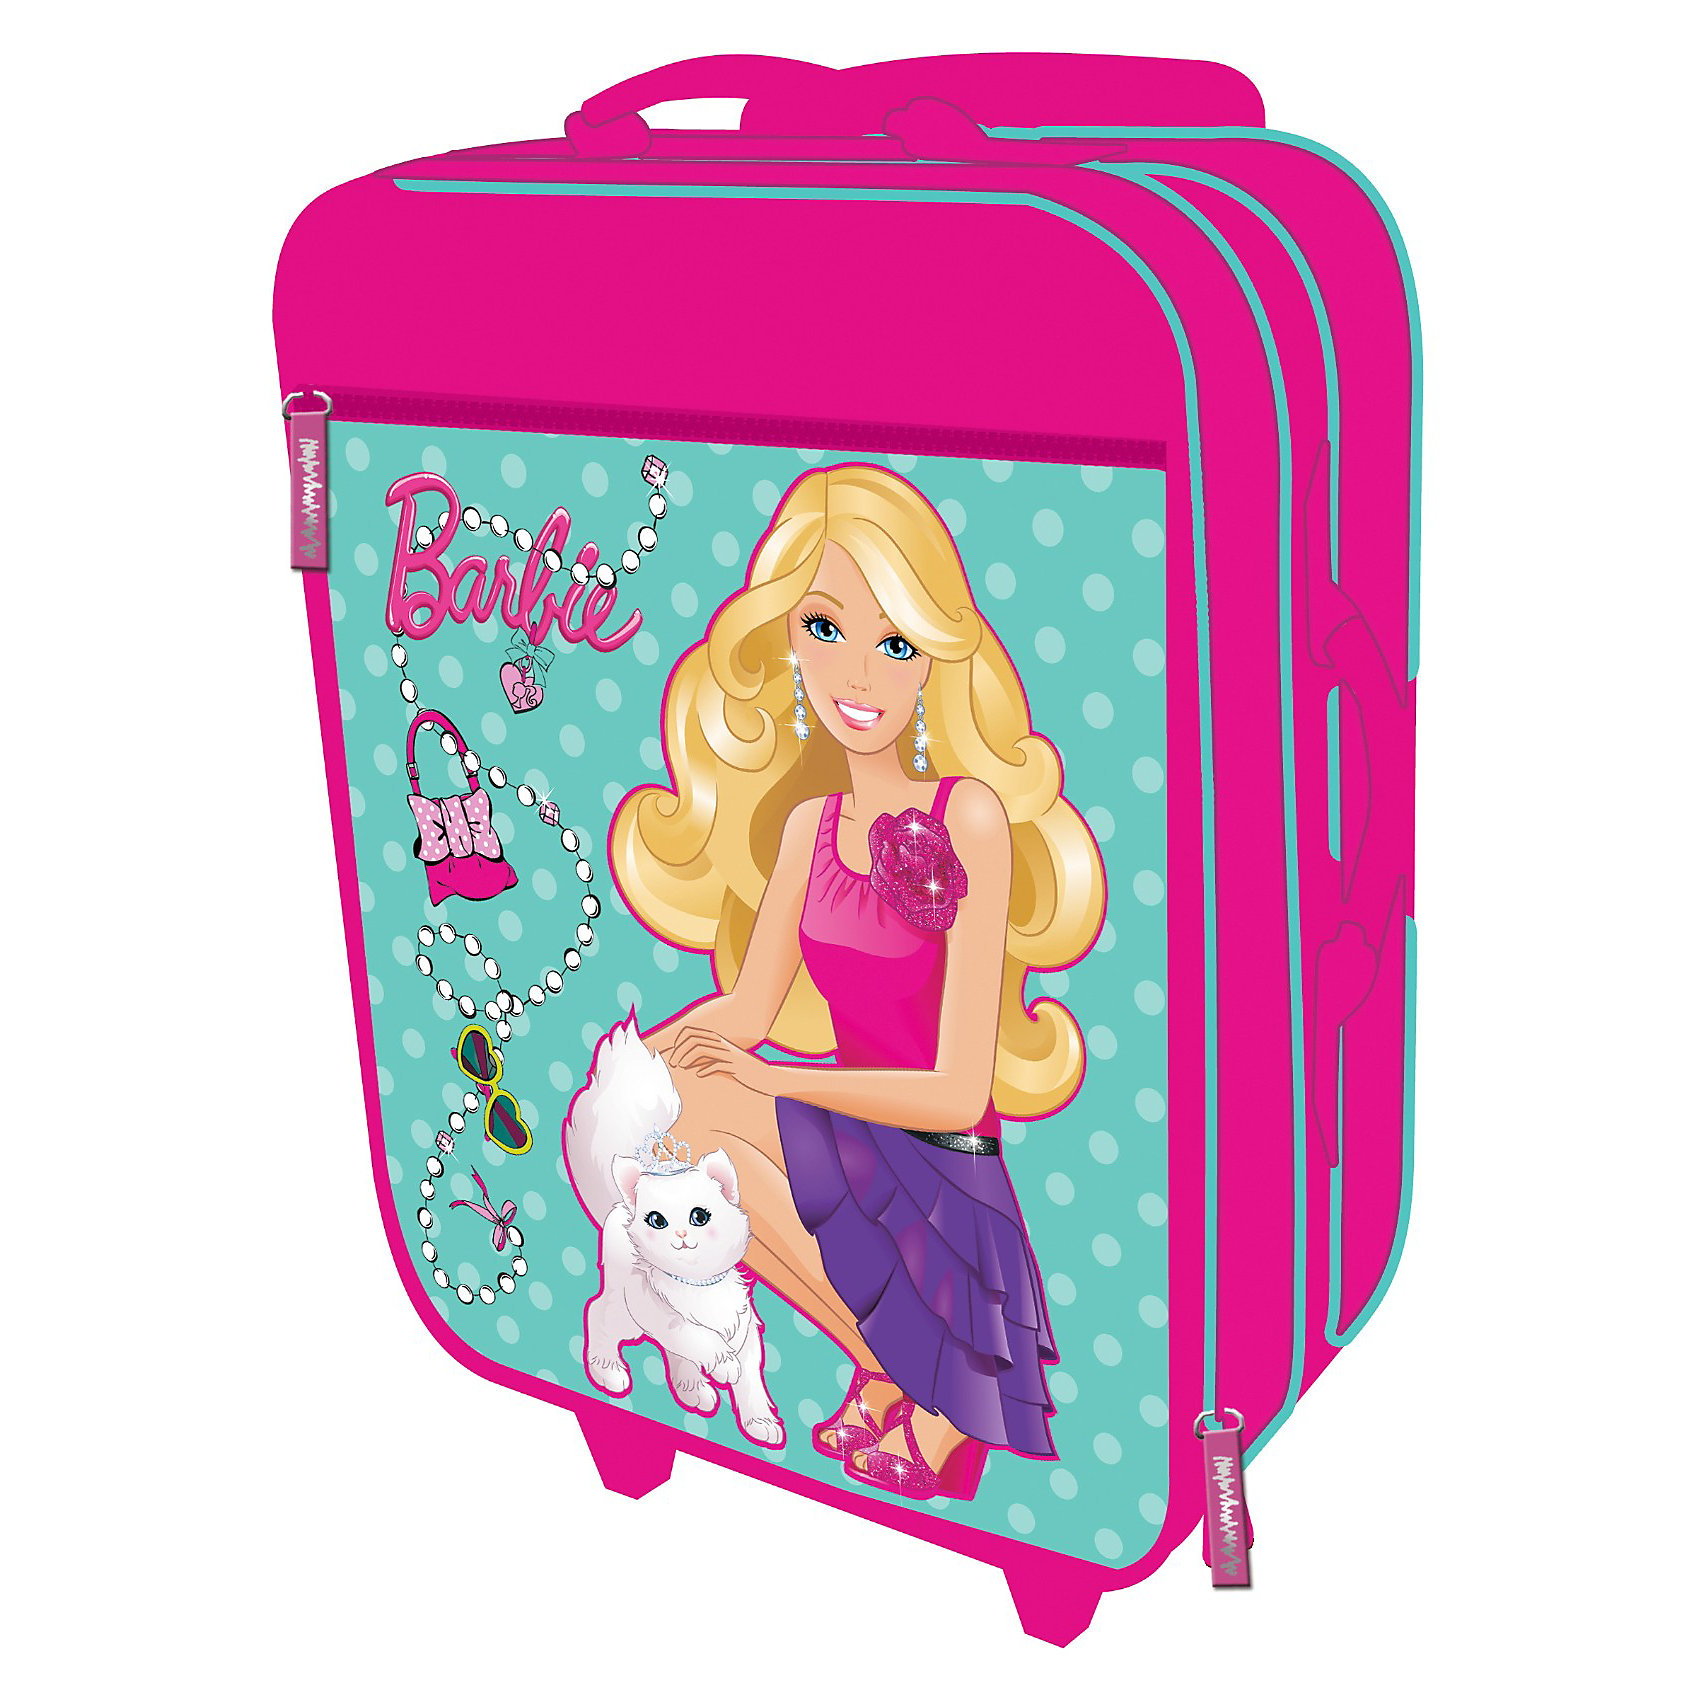 Академия групп Barbie Чемодан на роликах чемодан samsonite чемодан 82 см lite cube dlx